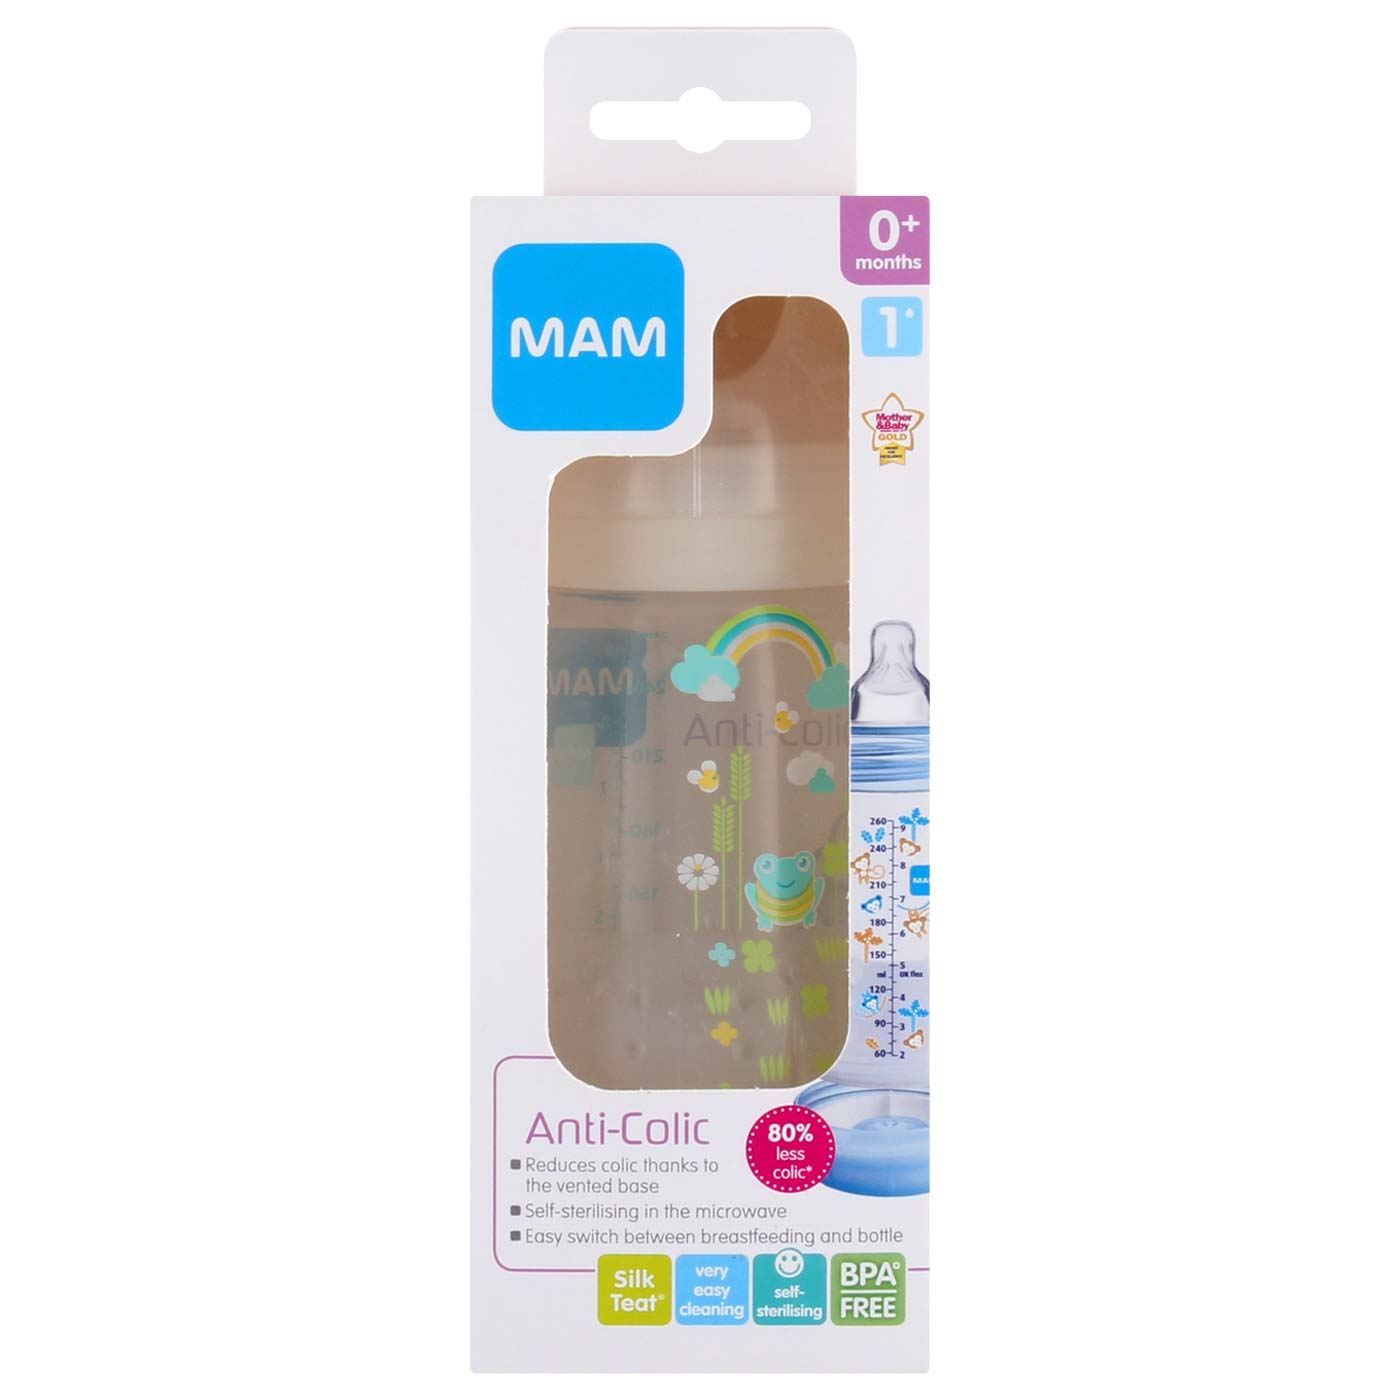 MAM Anti Colic Bottle Ivory 260ml Motif 1